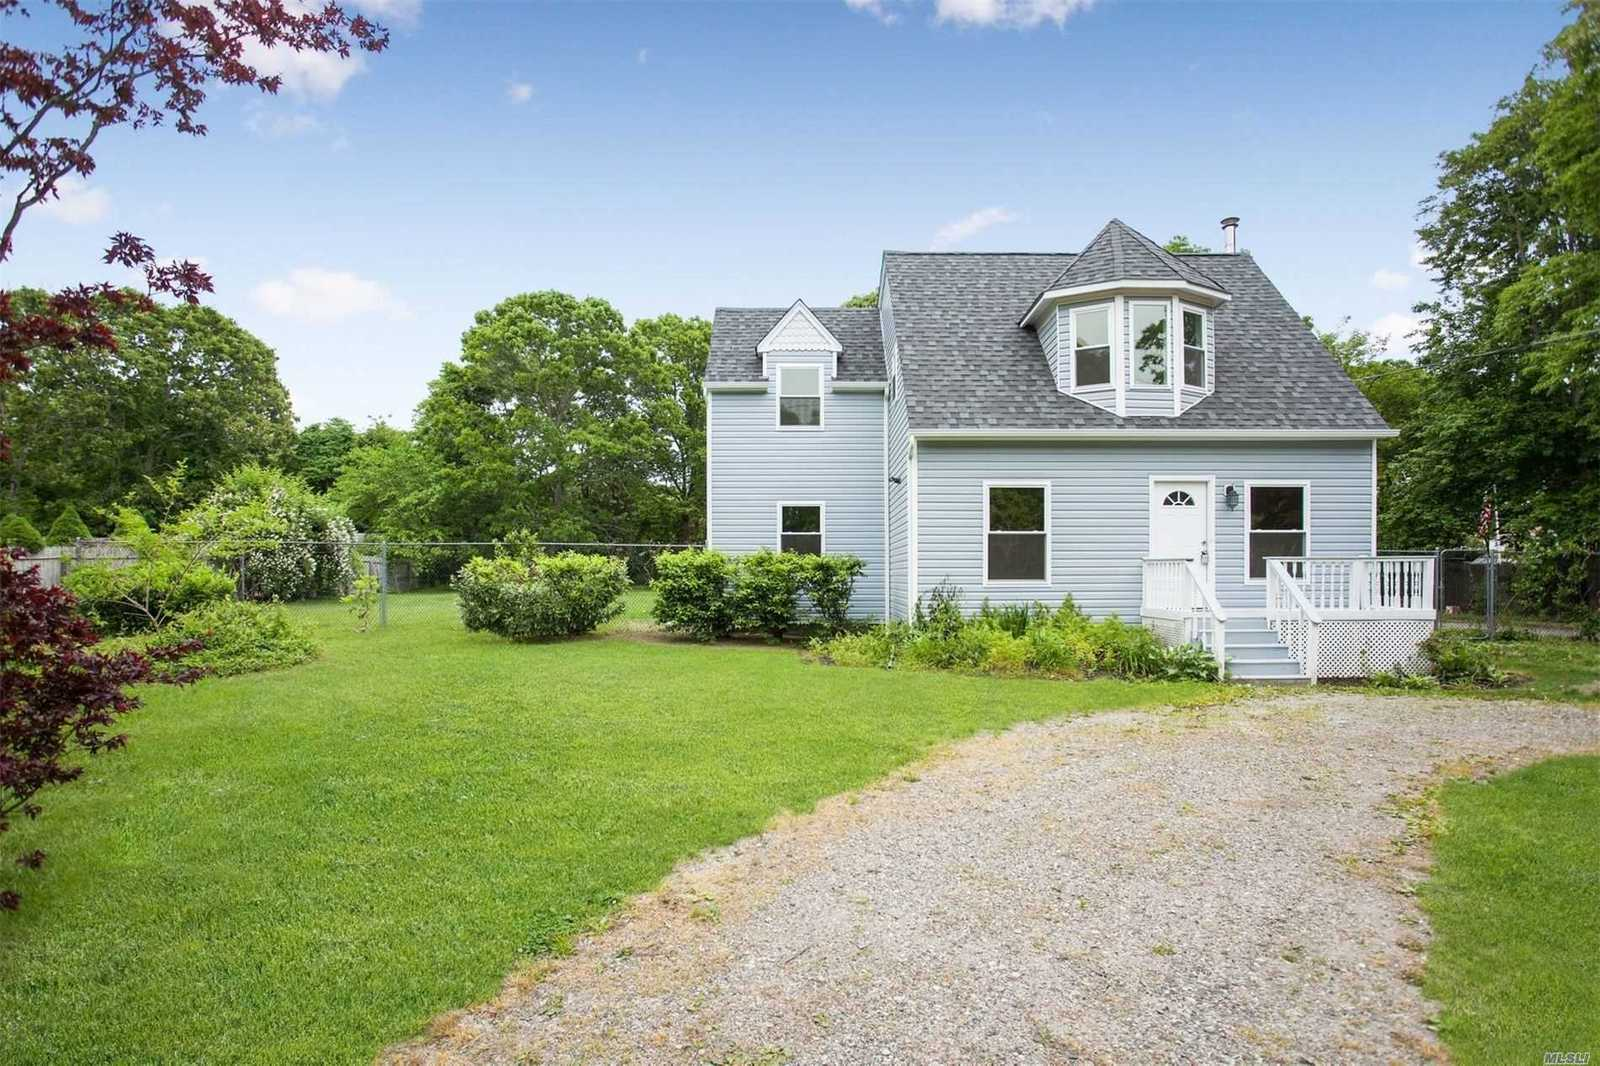 Local Real Estate: Homes for Sale — Mastic, NY — Coldwell Banker